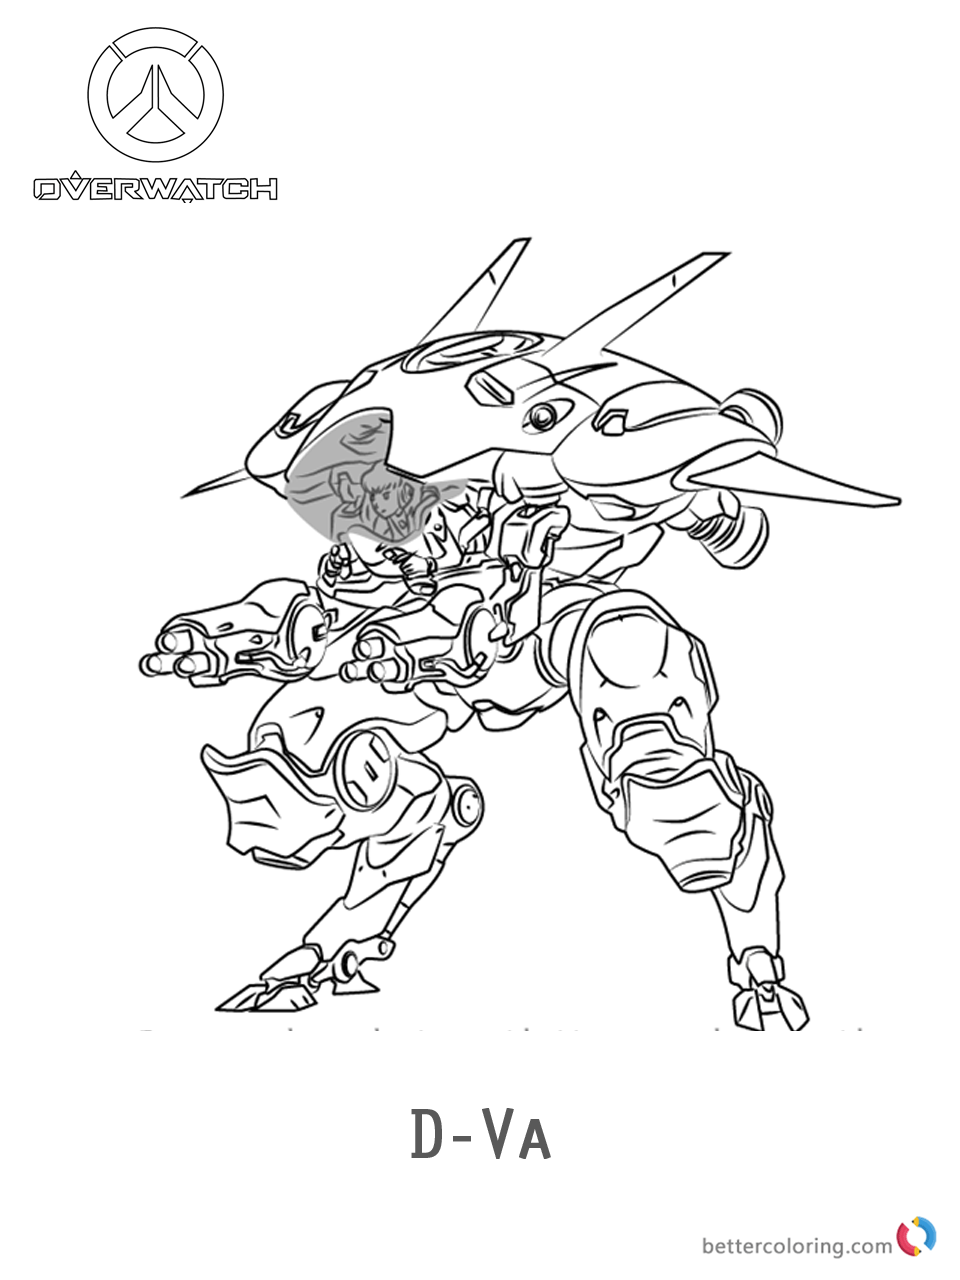 DVa From Overwatch Coloring Pages Free Printable